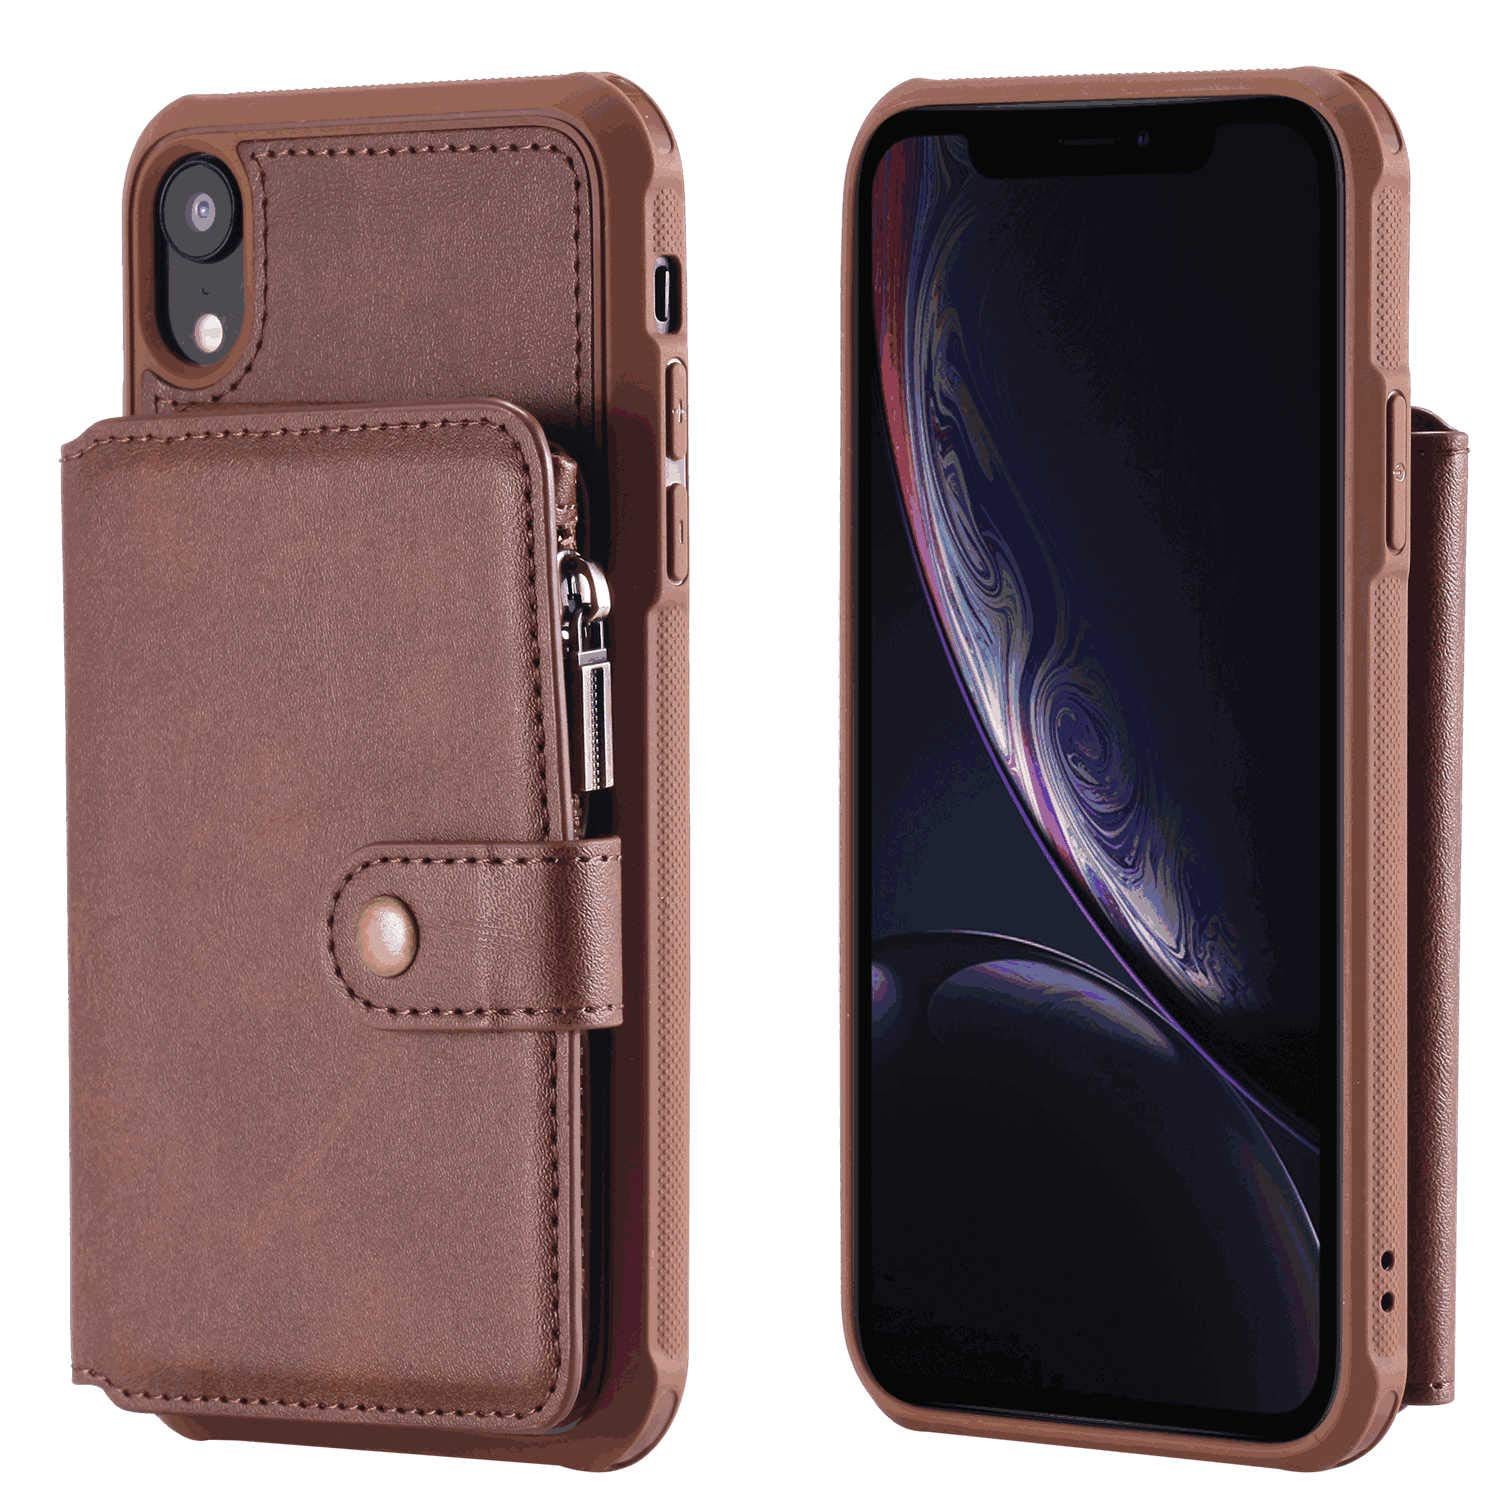 Cover for iPhone 7 Leather Extra-Shockproof Business Mobile Phone Cover Kickstand Card Holders with Free Waterproof-Bag iPhone 7 Flip Case